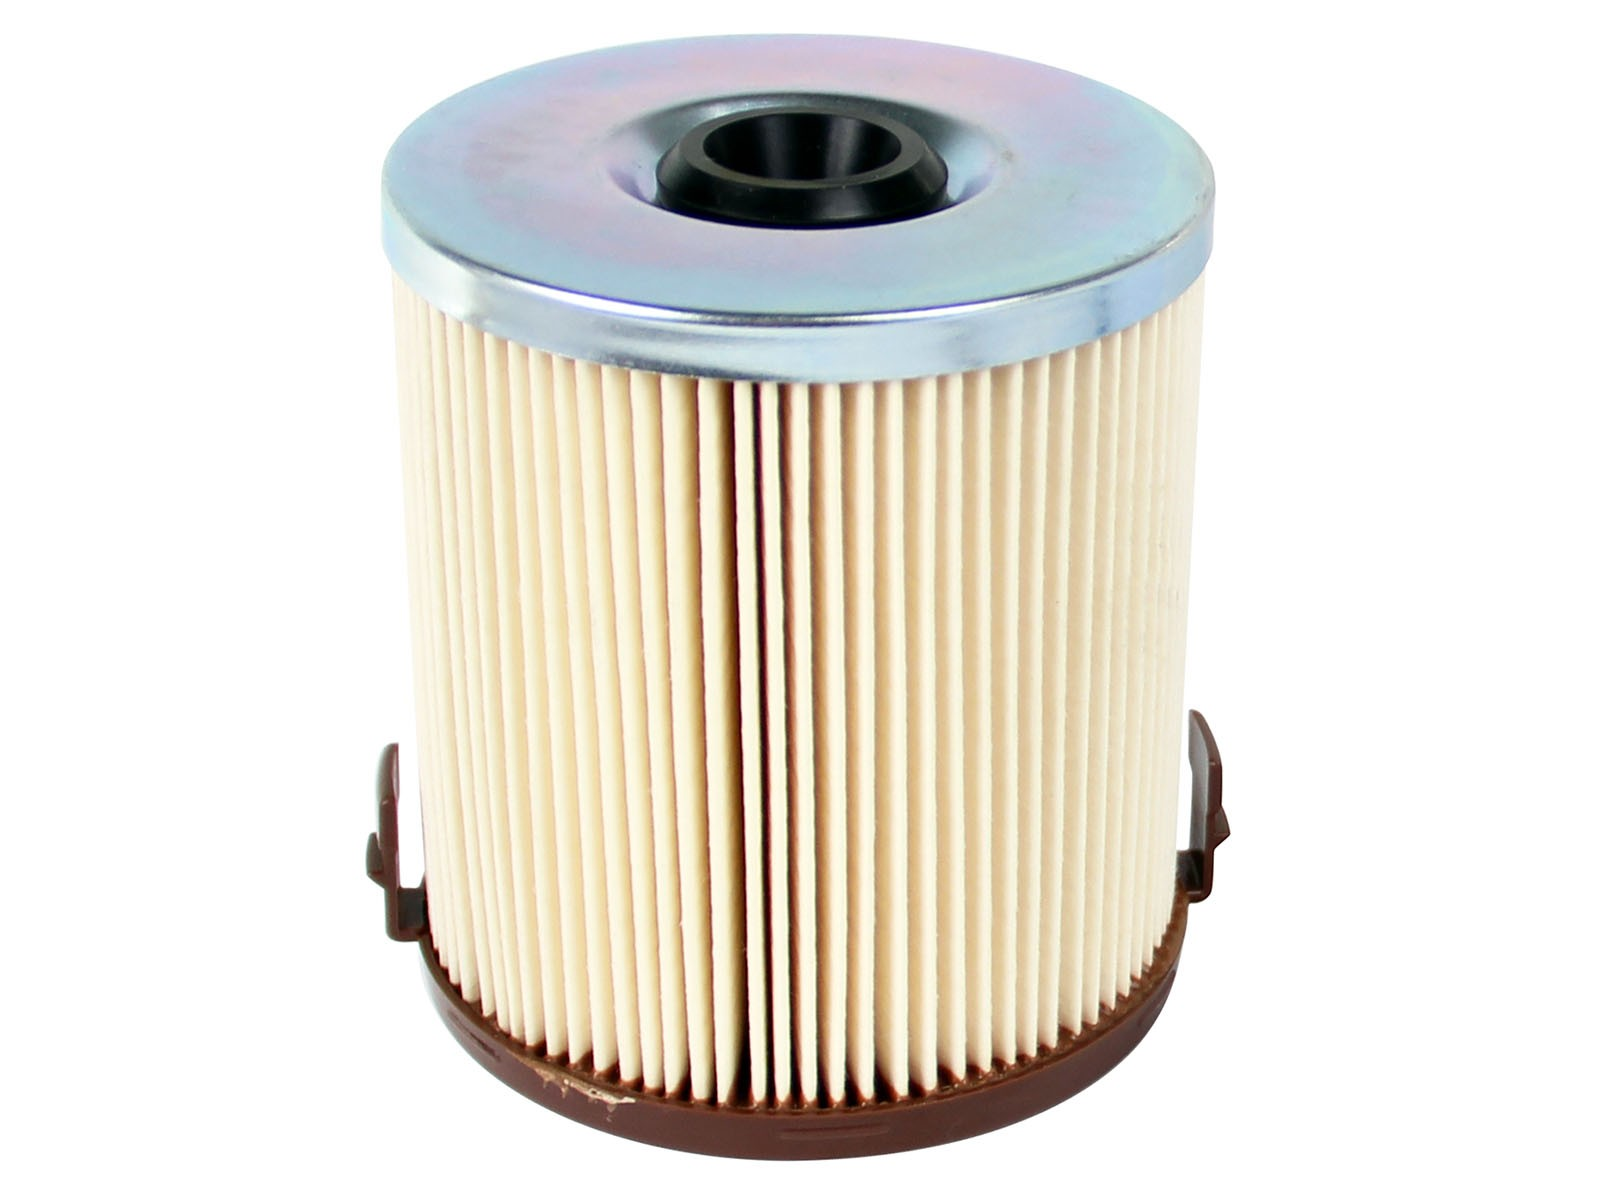 aFe POWER 44-FF009 Pro GUARD D2 Fuel Filter